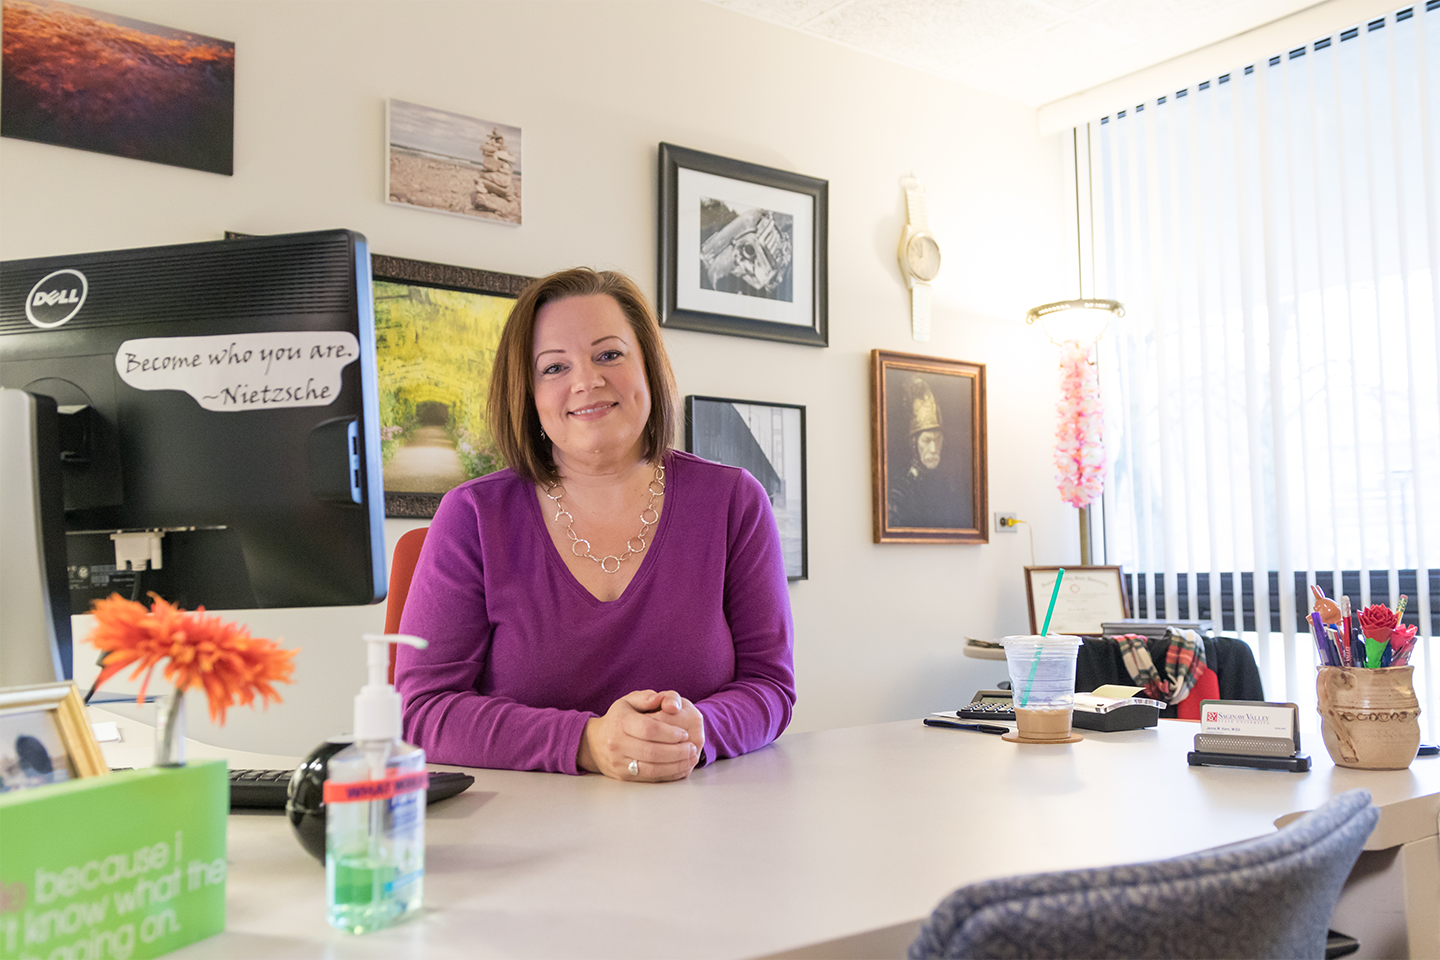 We love seeing our faculty and staff get recognized! Take a moment to read the story on Janna Kern! #WeCardinal https://t.co/xGBoM511mu https://t.co/gGL48nSwAZ